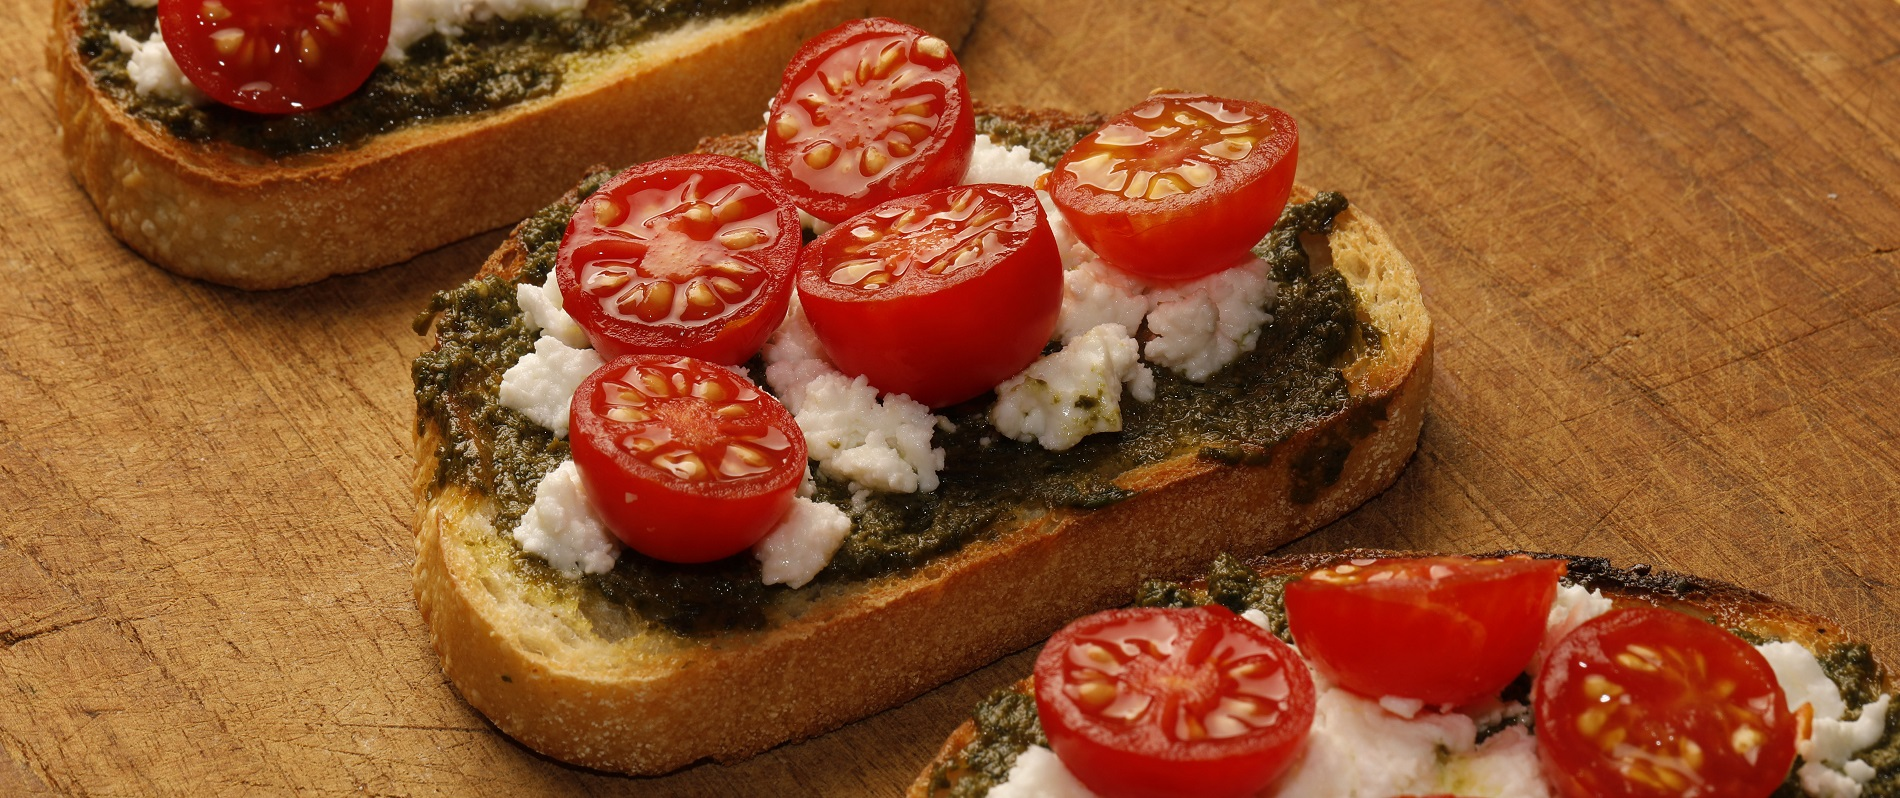 Andrew Galarneau says, 'Make no mistake: It takes a mortar and pestle to produce the most pristine pesto.' Pictured is crostini with tomatoes, smoked goat feta and Galarneau's handmade mortar-and-pestle pesto. (Derek Gee/Buffalo News)